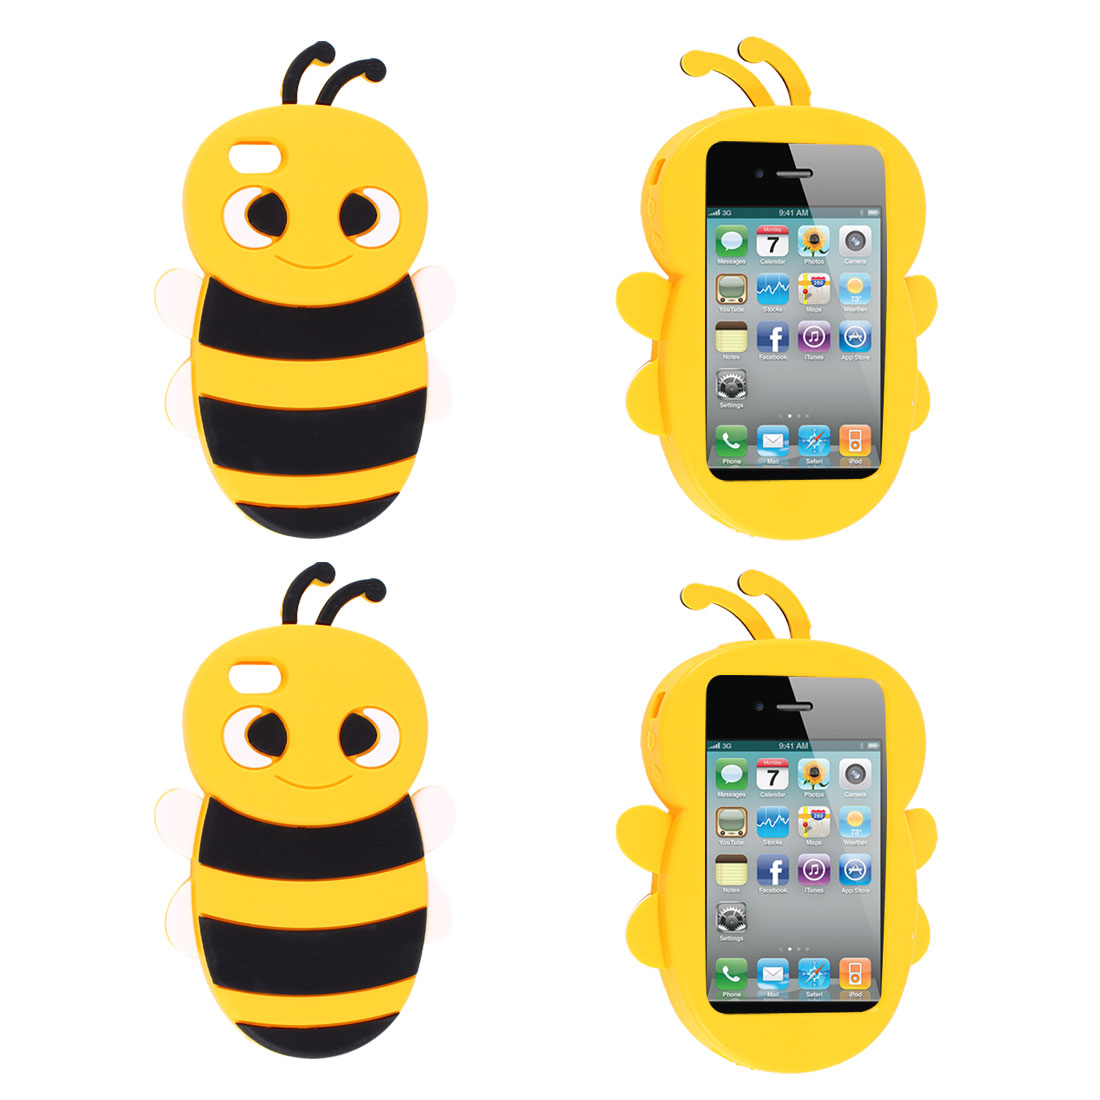 2 Pcs Bee Shaped Silicone Cover Case Yellow for iPhone 4 4G 4S